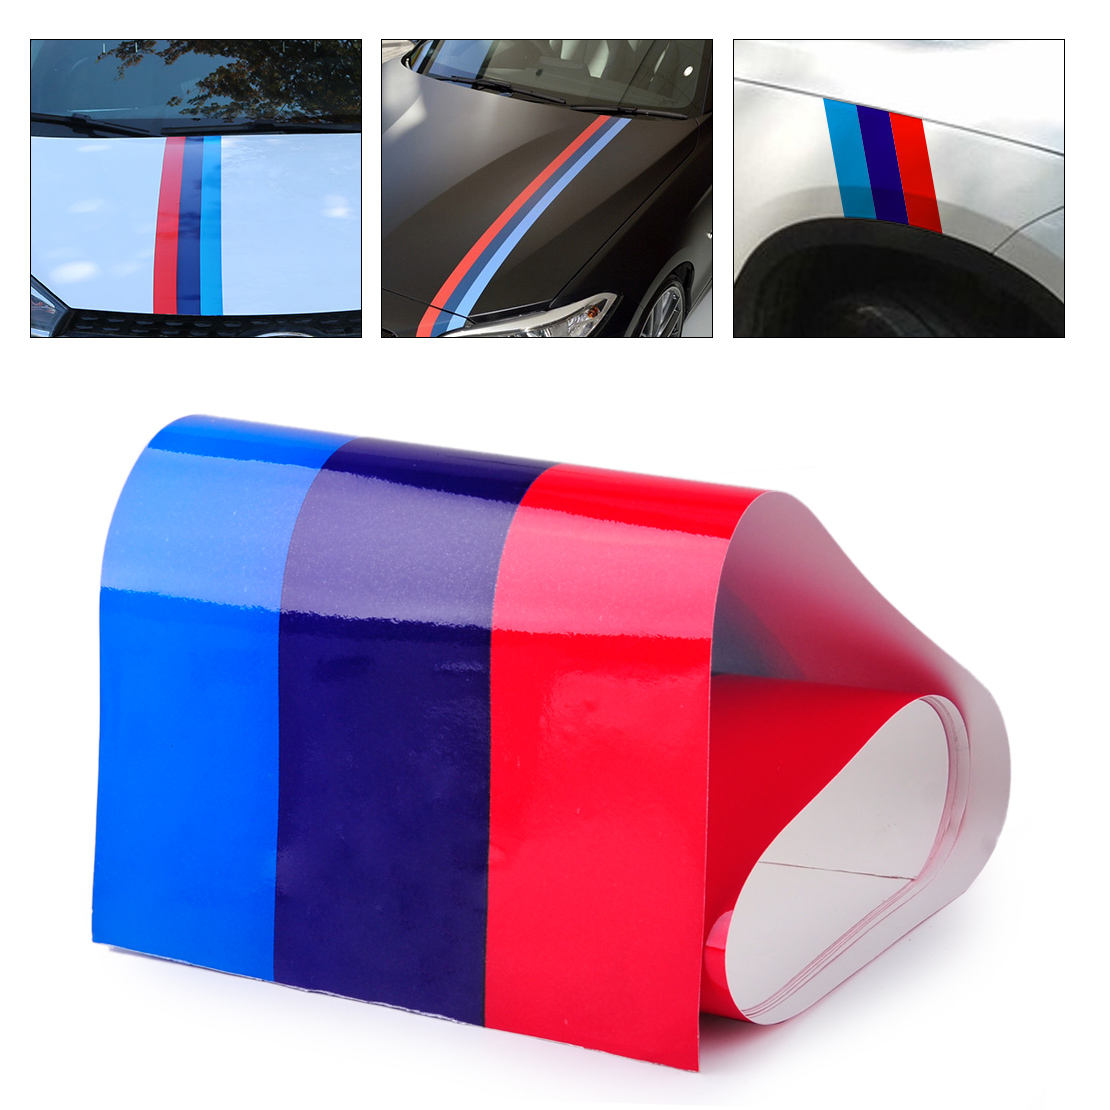 DWCX Car Styling M-Colored Power Flag Stripe Sticker Decal Car Hood Roof Fender 2M Fit for BMW 1 2 3 4 5 7 Series X1 X3 X6 Z1 Z3